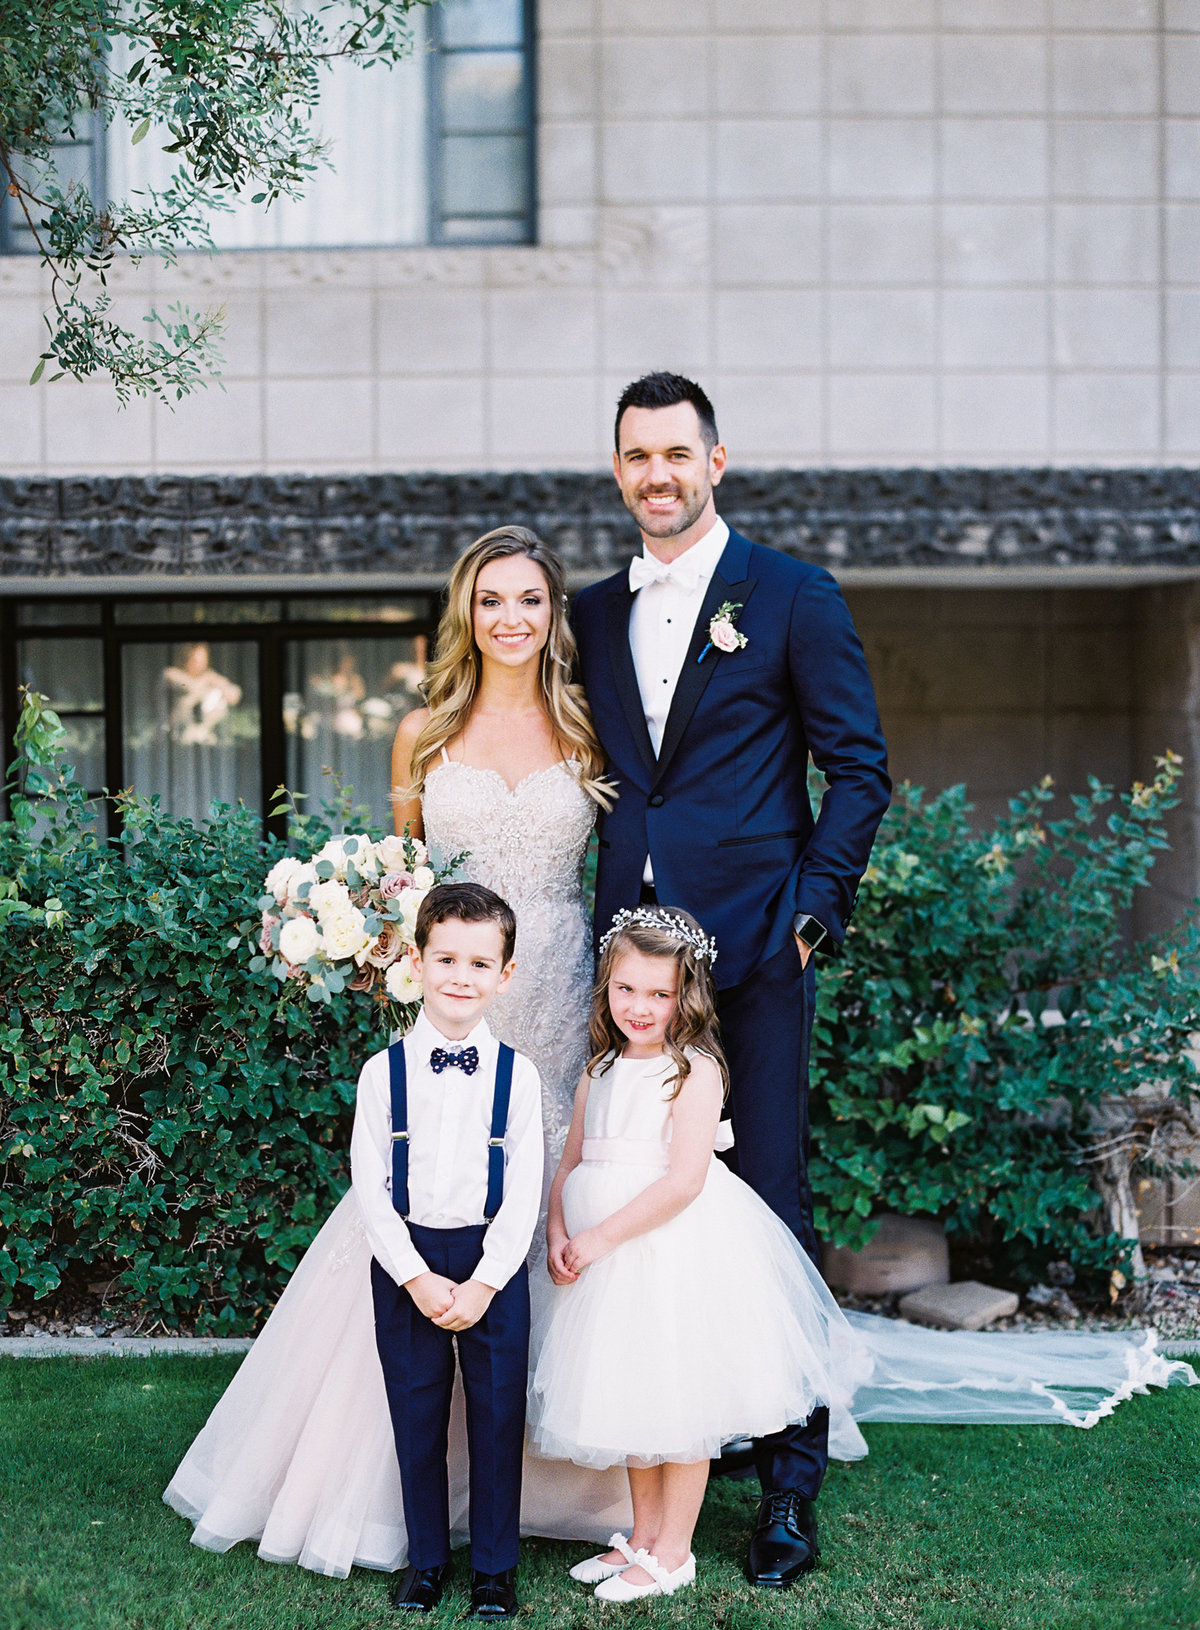 Arizona Biltmore Wedding - Mary Claire Photography-41